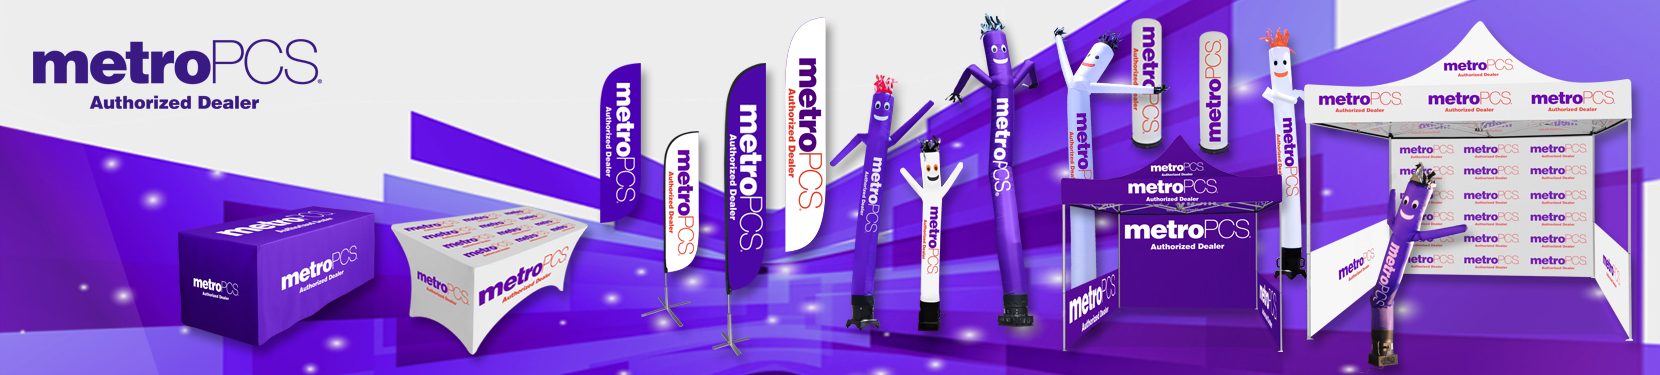 metropcs-feather-flags-banners-air-dancers-and-outdoor-advertising.jpg